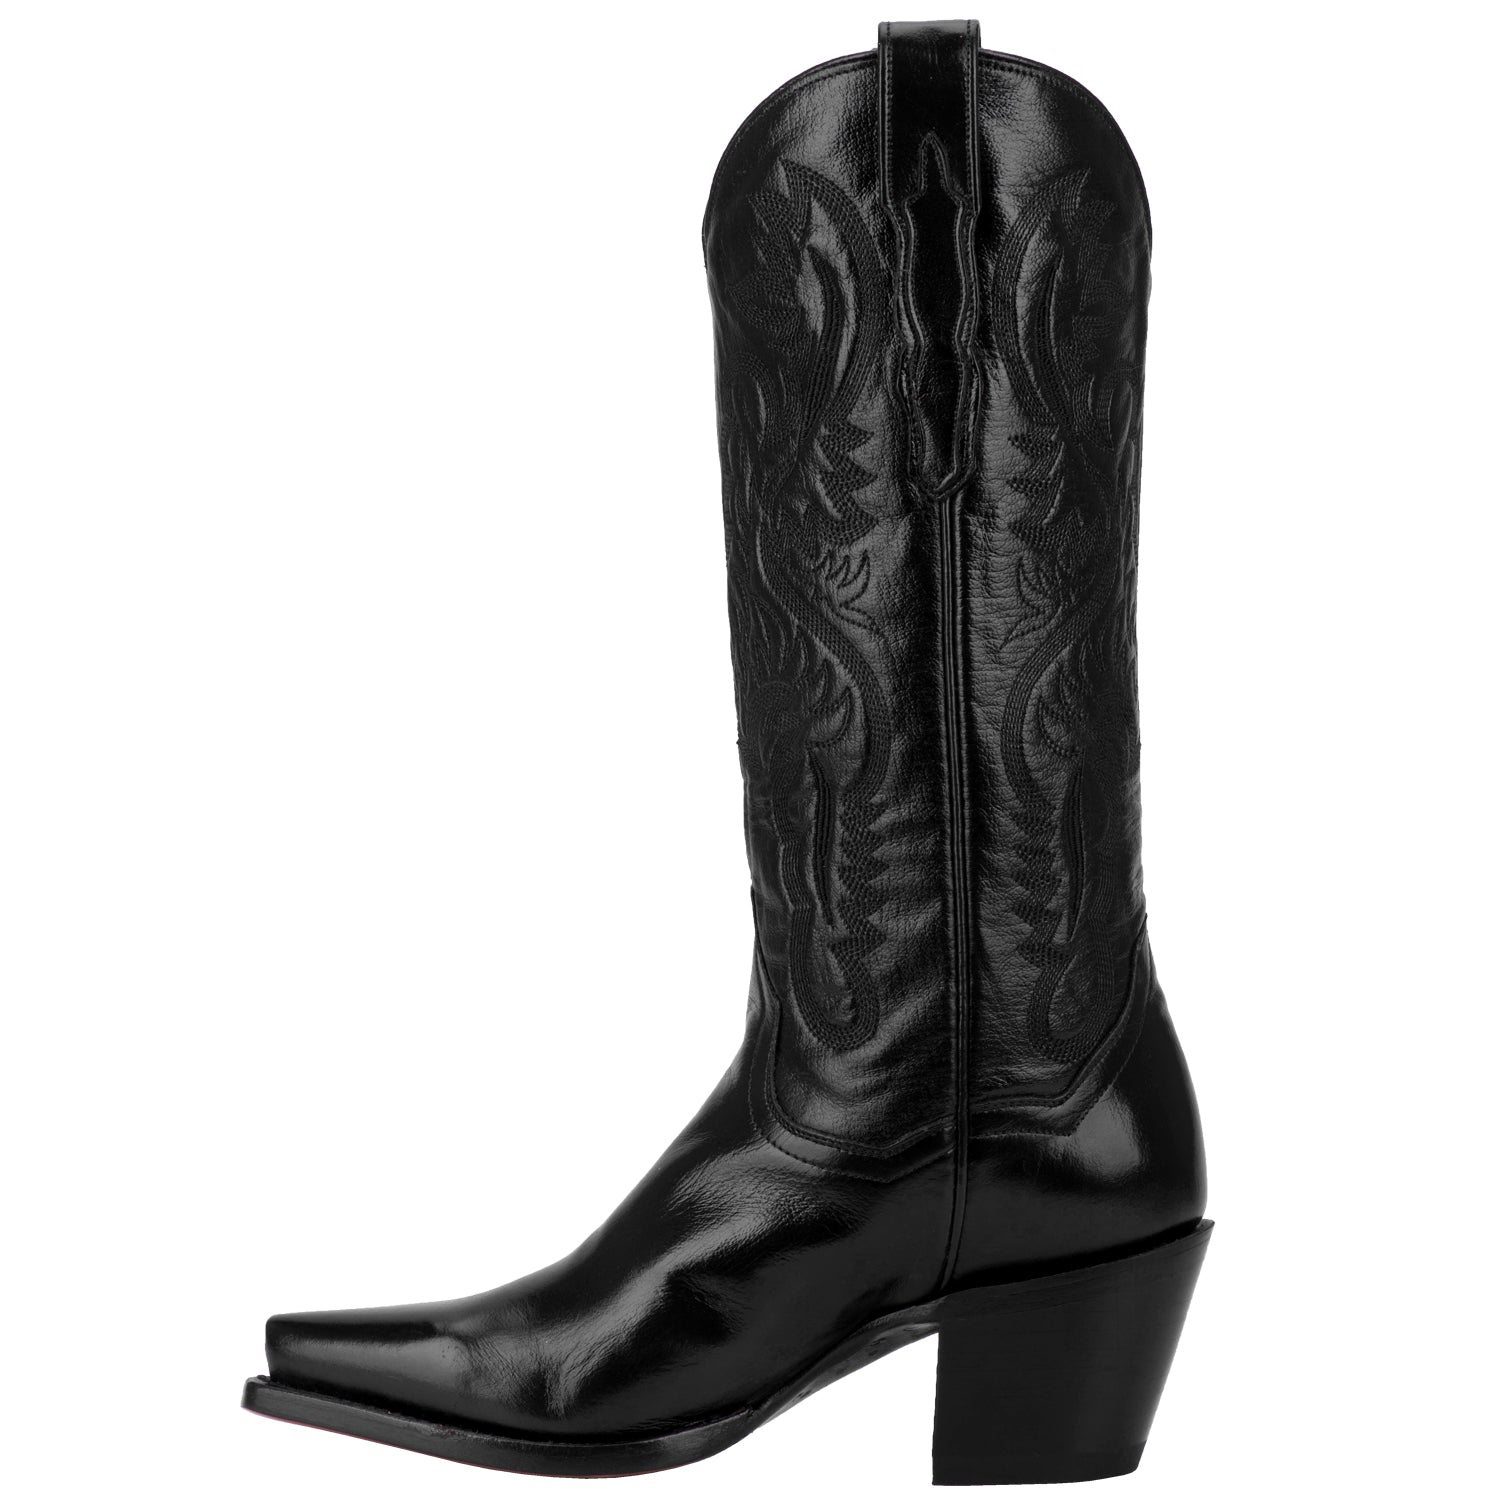 MARIA LEATHER BOOT 4253907517482